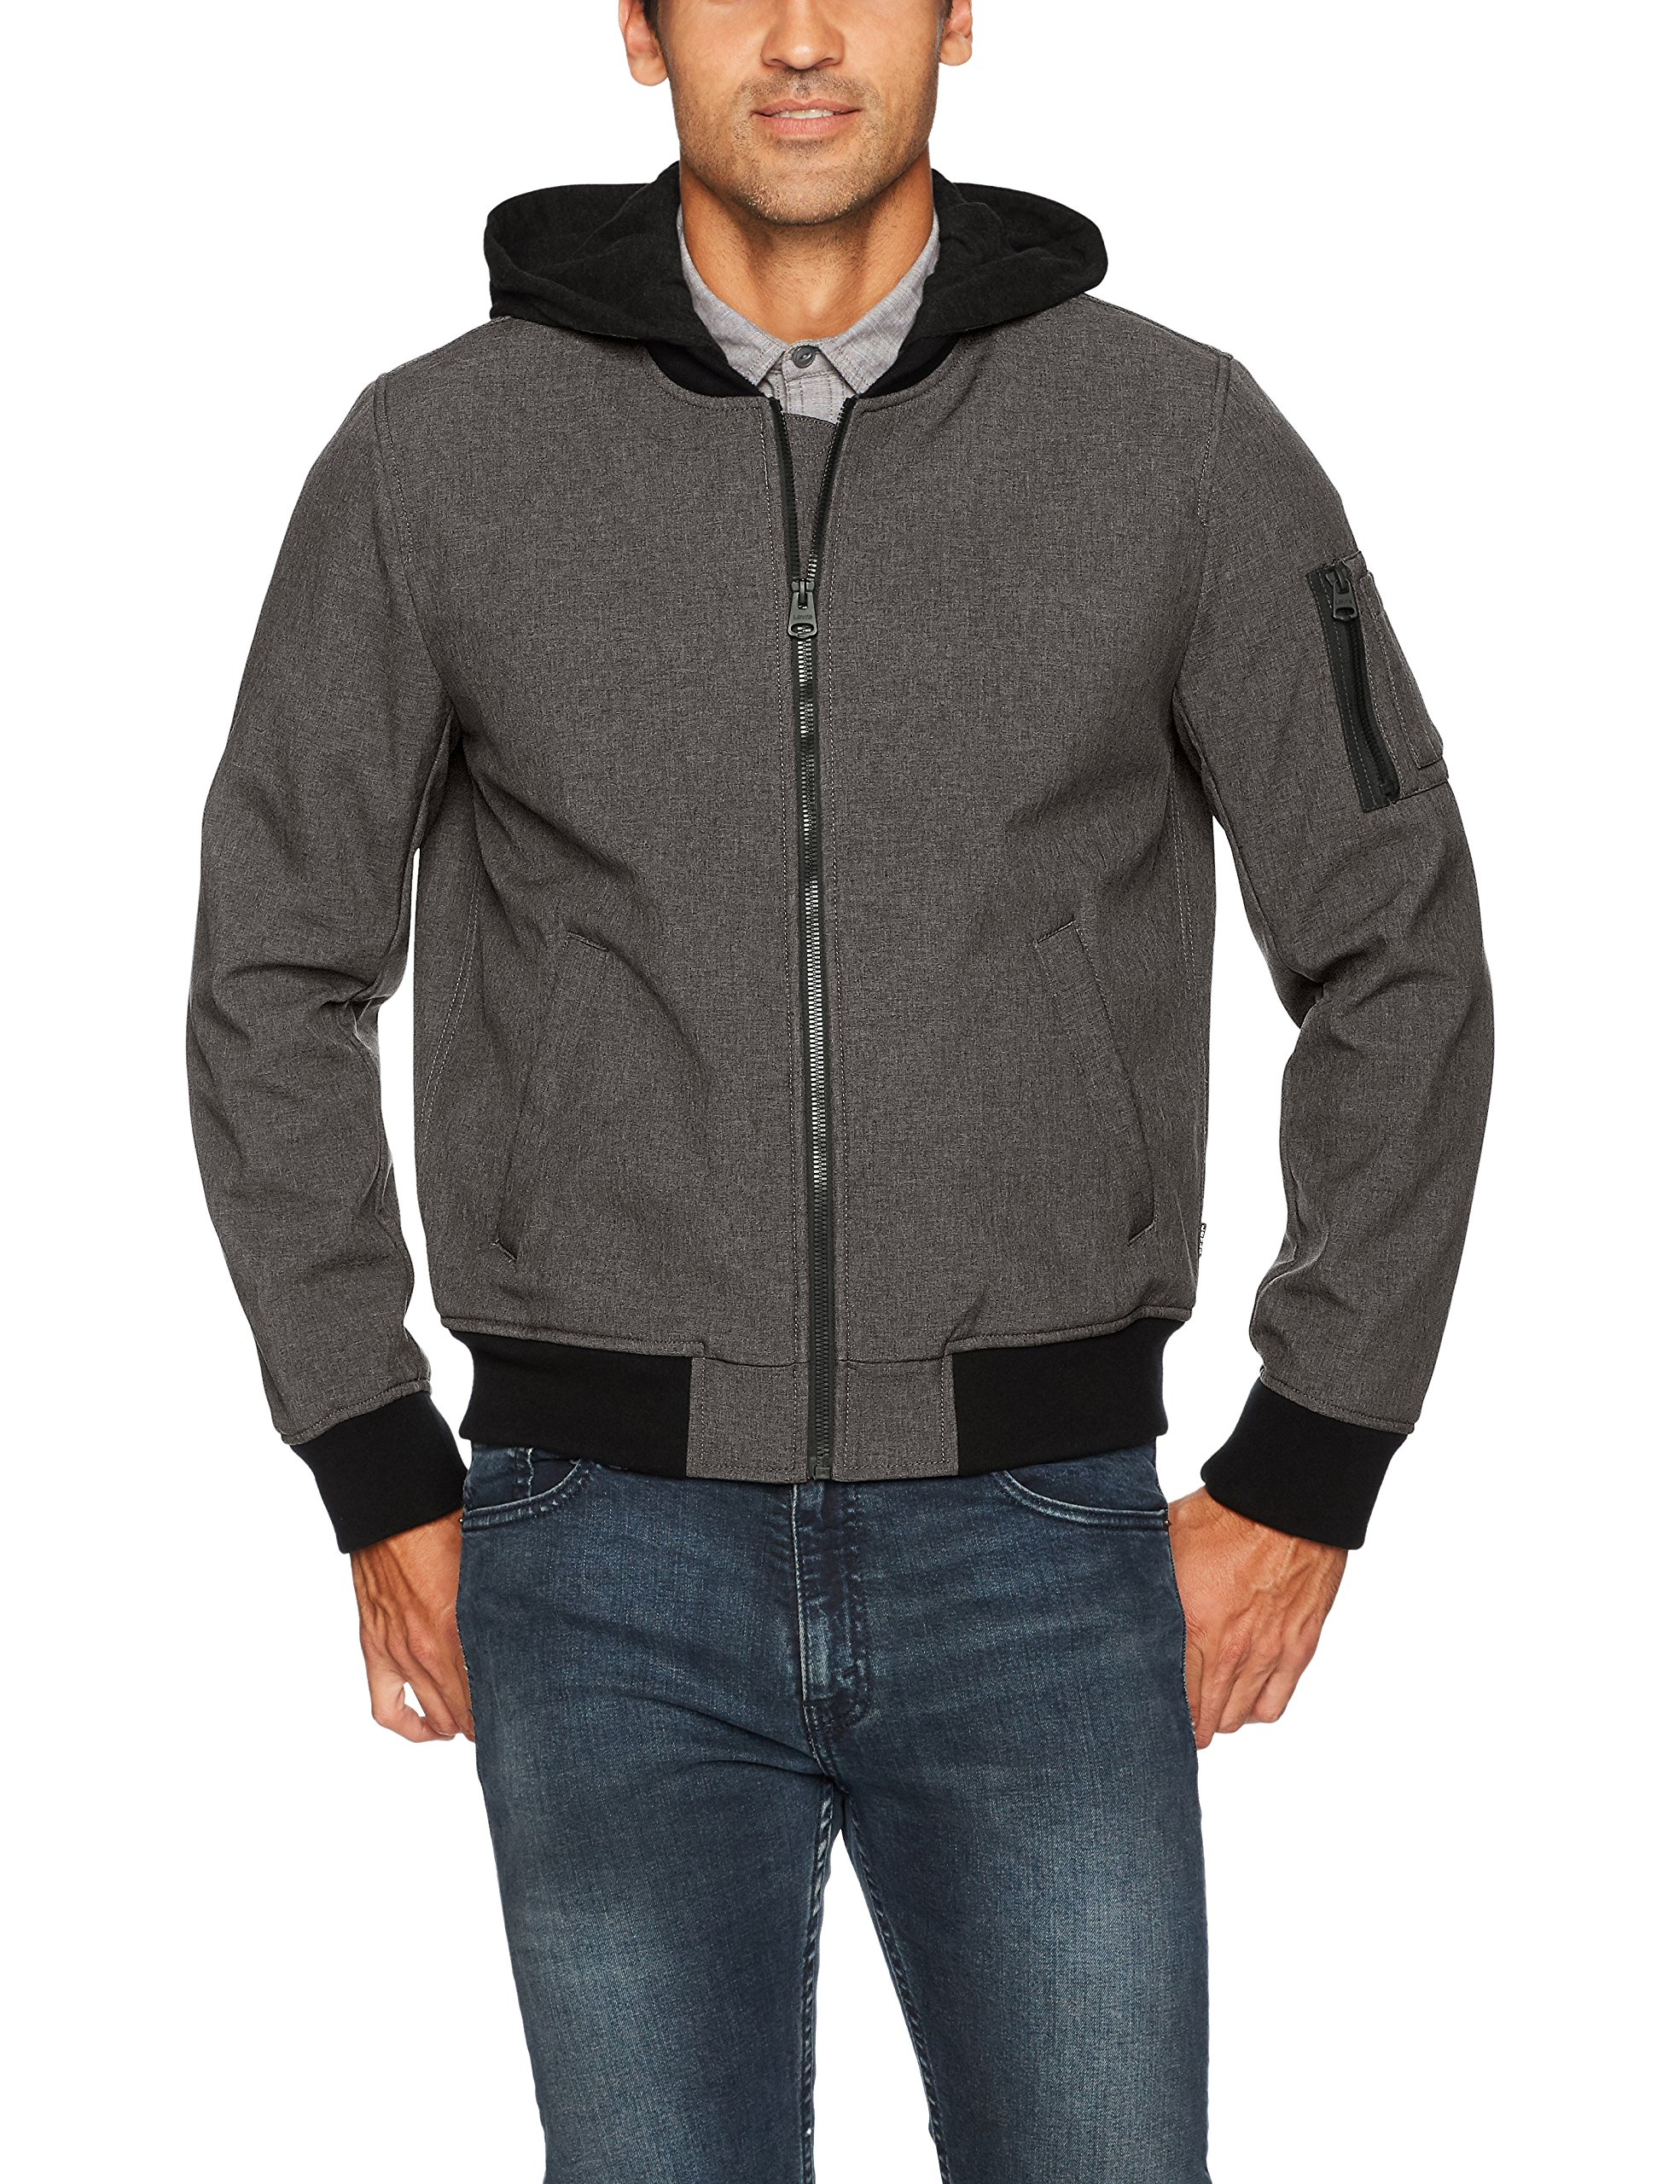 Levi's Men's Soft Shell Hooded Flight Bomber Jacket, Heather Charcoal, X-Large by Levi's